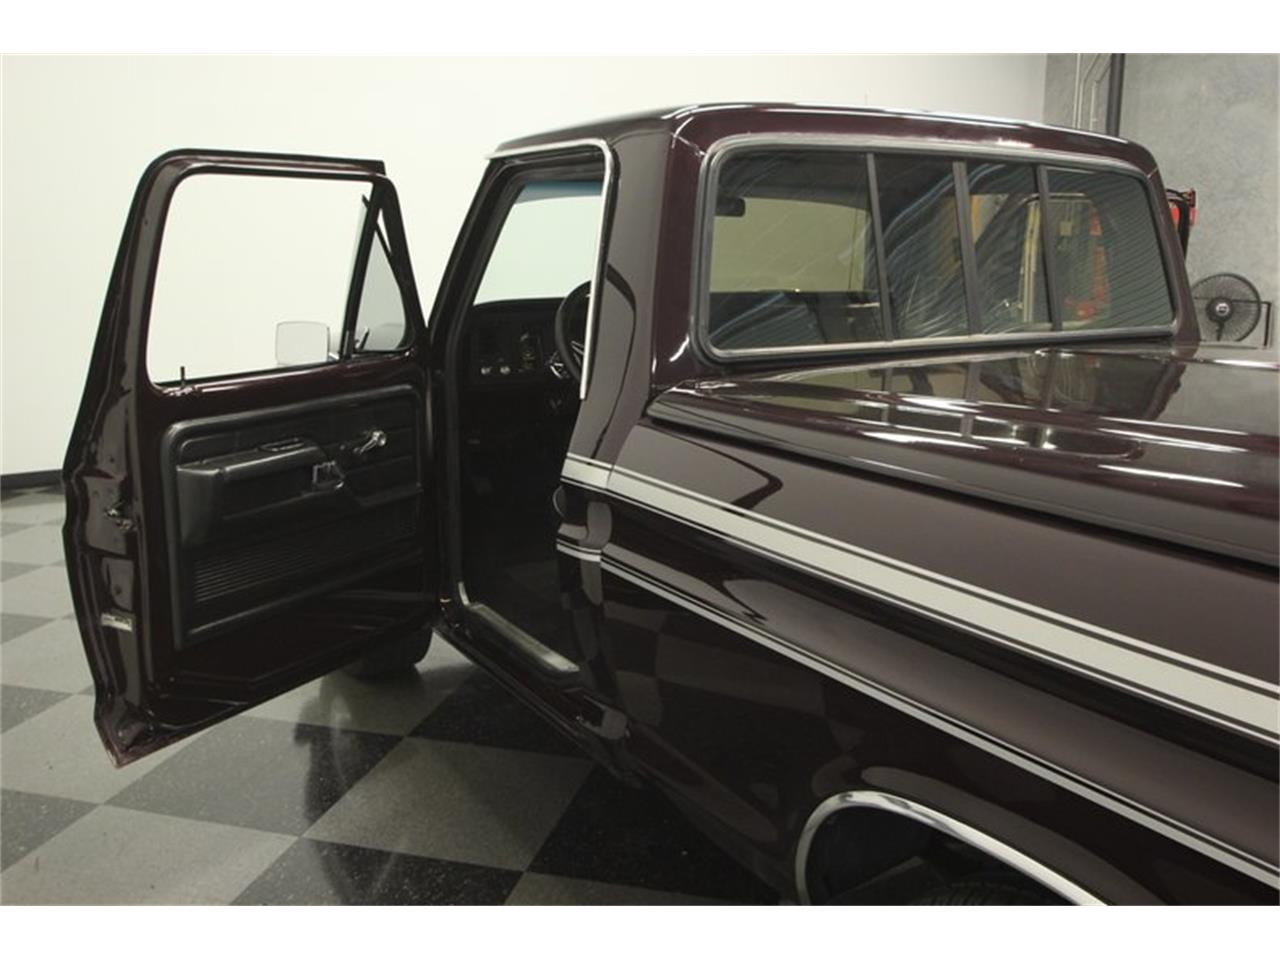 1977 Ford F100 for sale in Lutz, FL – photo 43